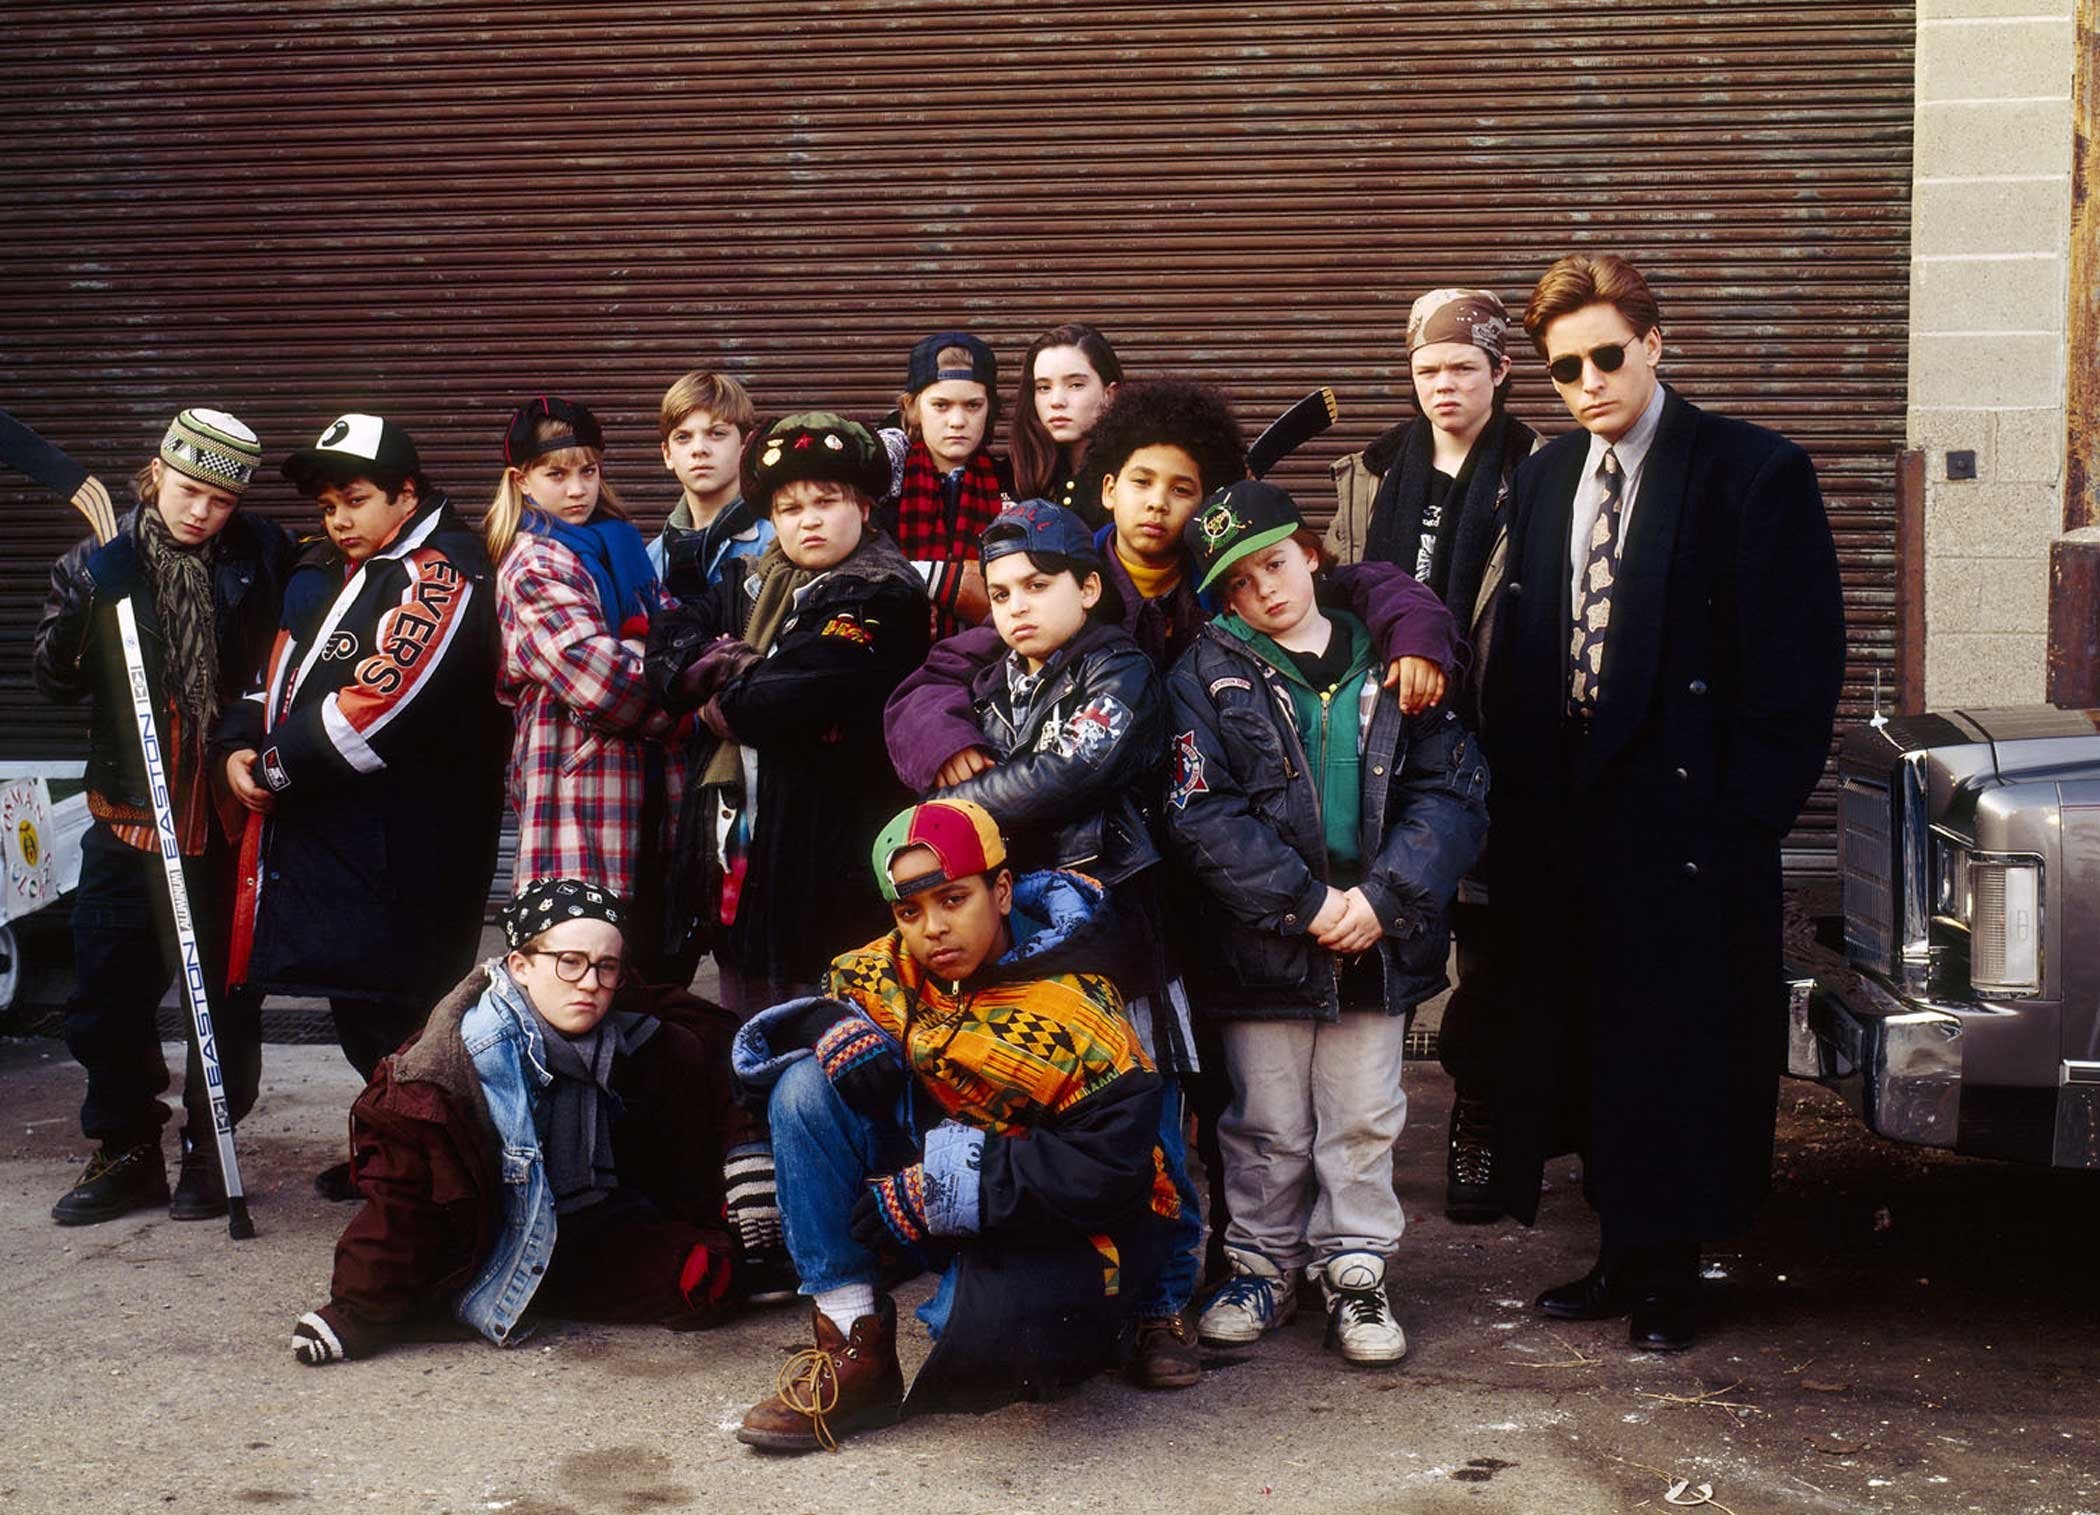 The Mighty Ducks, 1992